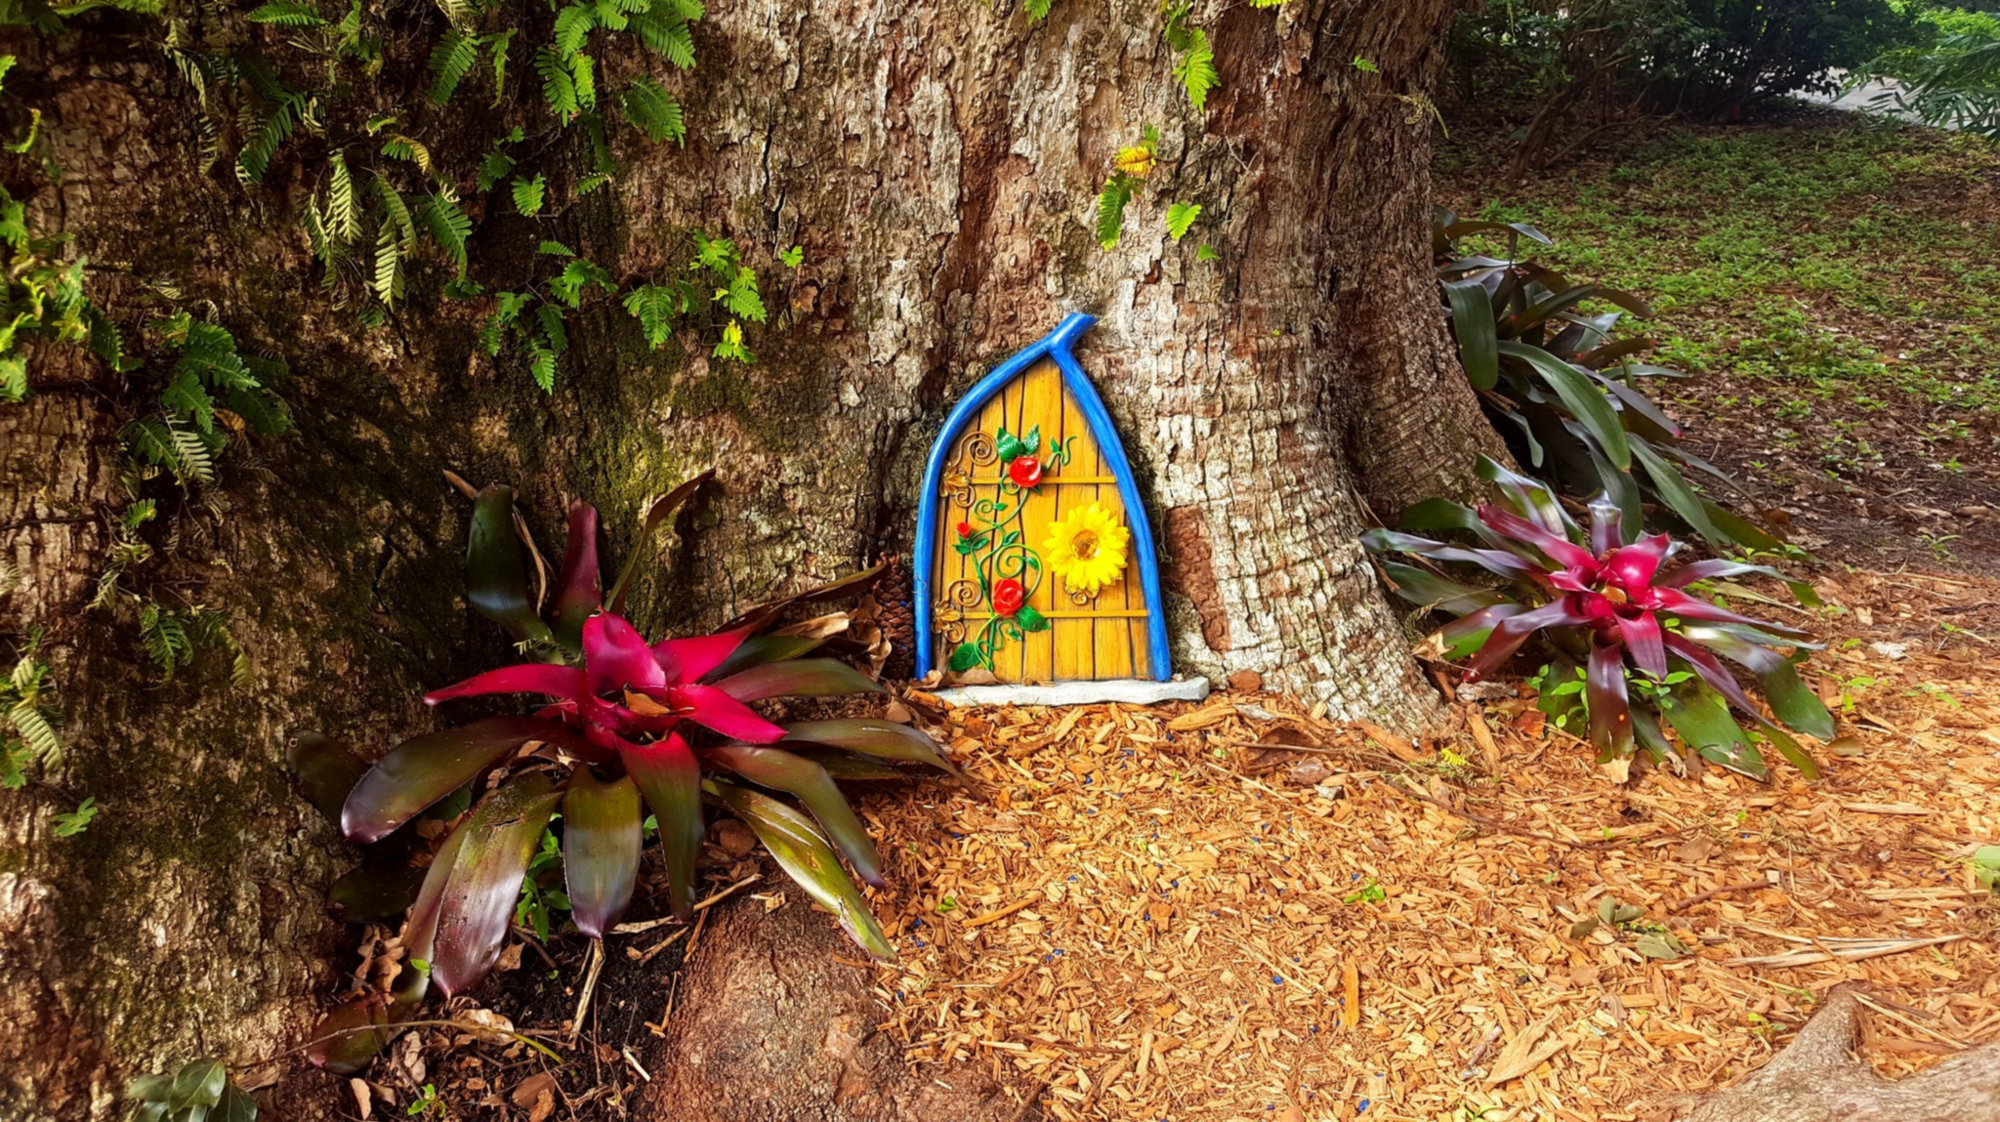 Fairy Doors enchant at Leu Gardens - Orlando Sentinel